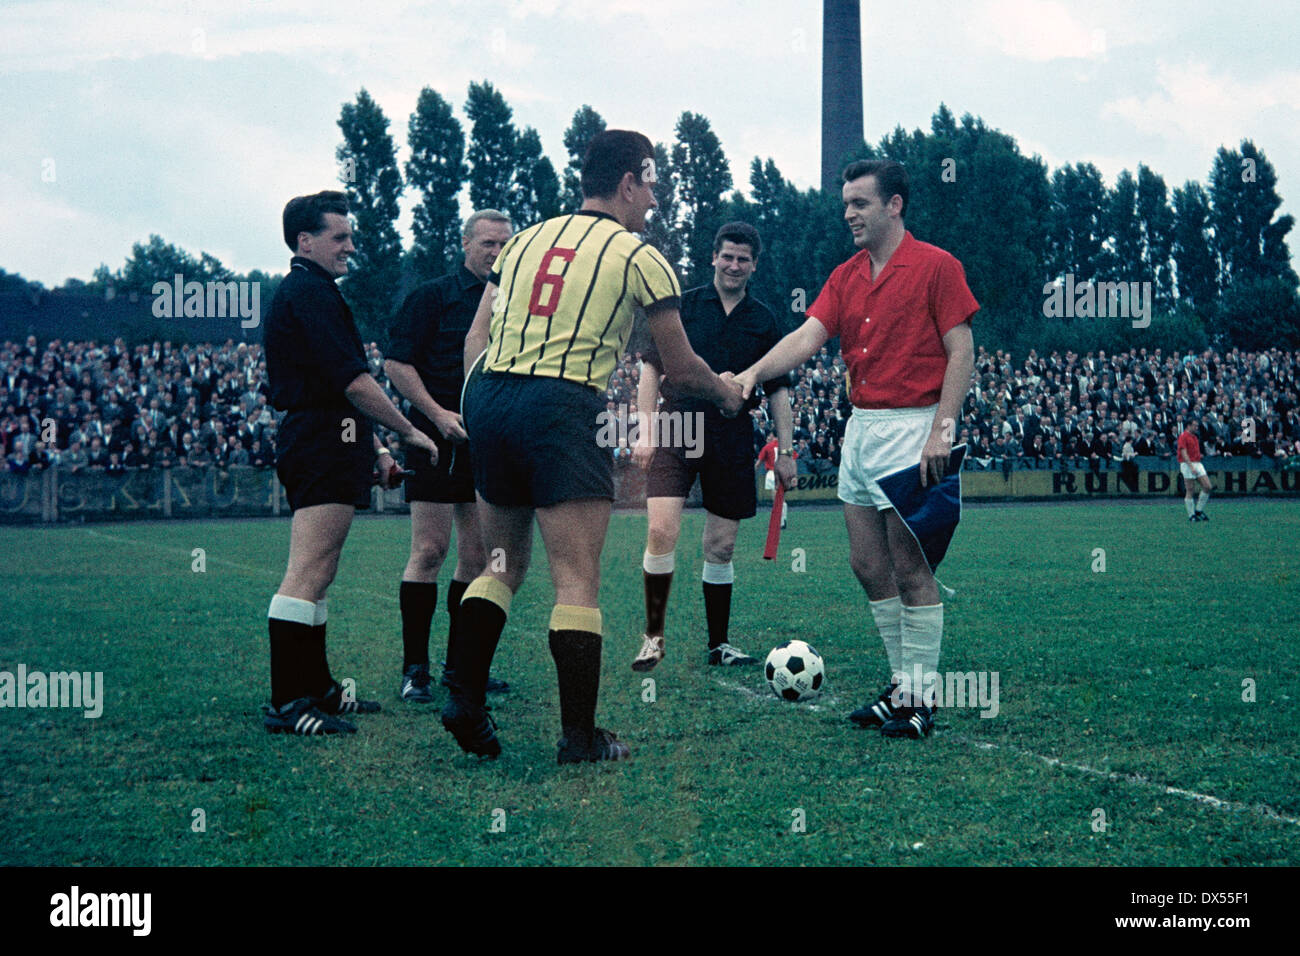 football, Regionalliga West, 1964/1965, Stadium am Suedpark, Eintracht Gelsenkirchen versus Alemannia Aachen 2:0, welcome of the team captains, left Christian Breuer (Aachen), right Willi Klein (Gelsenkirchen), behind referee Kloesters and assistants - Stock Image